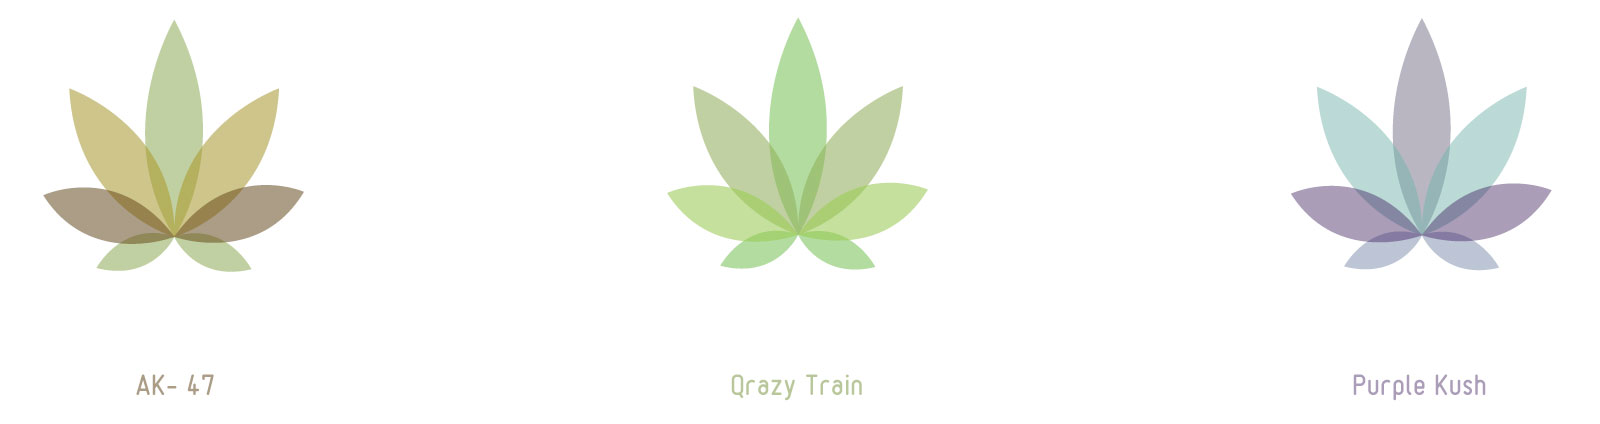 cannabis strains graphicsbyte creative media Mark Boehly